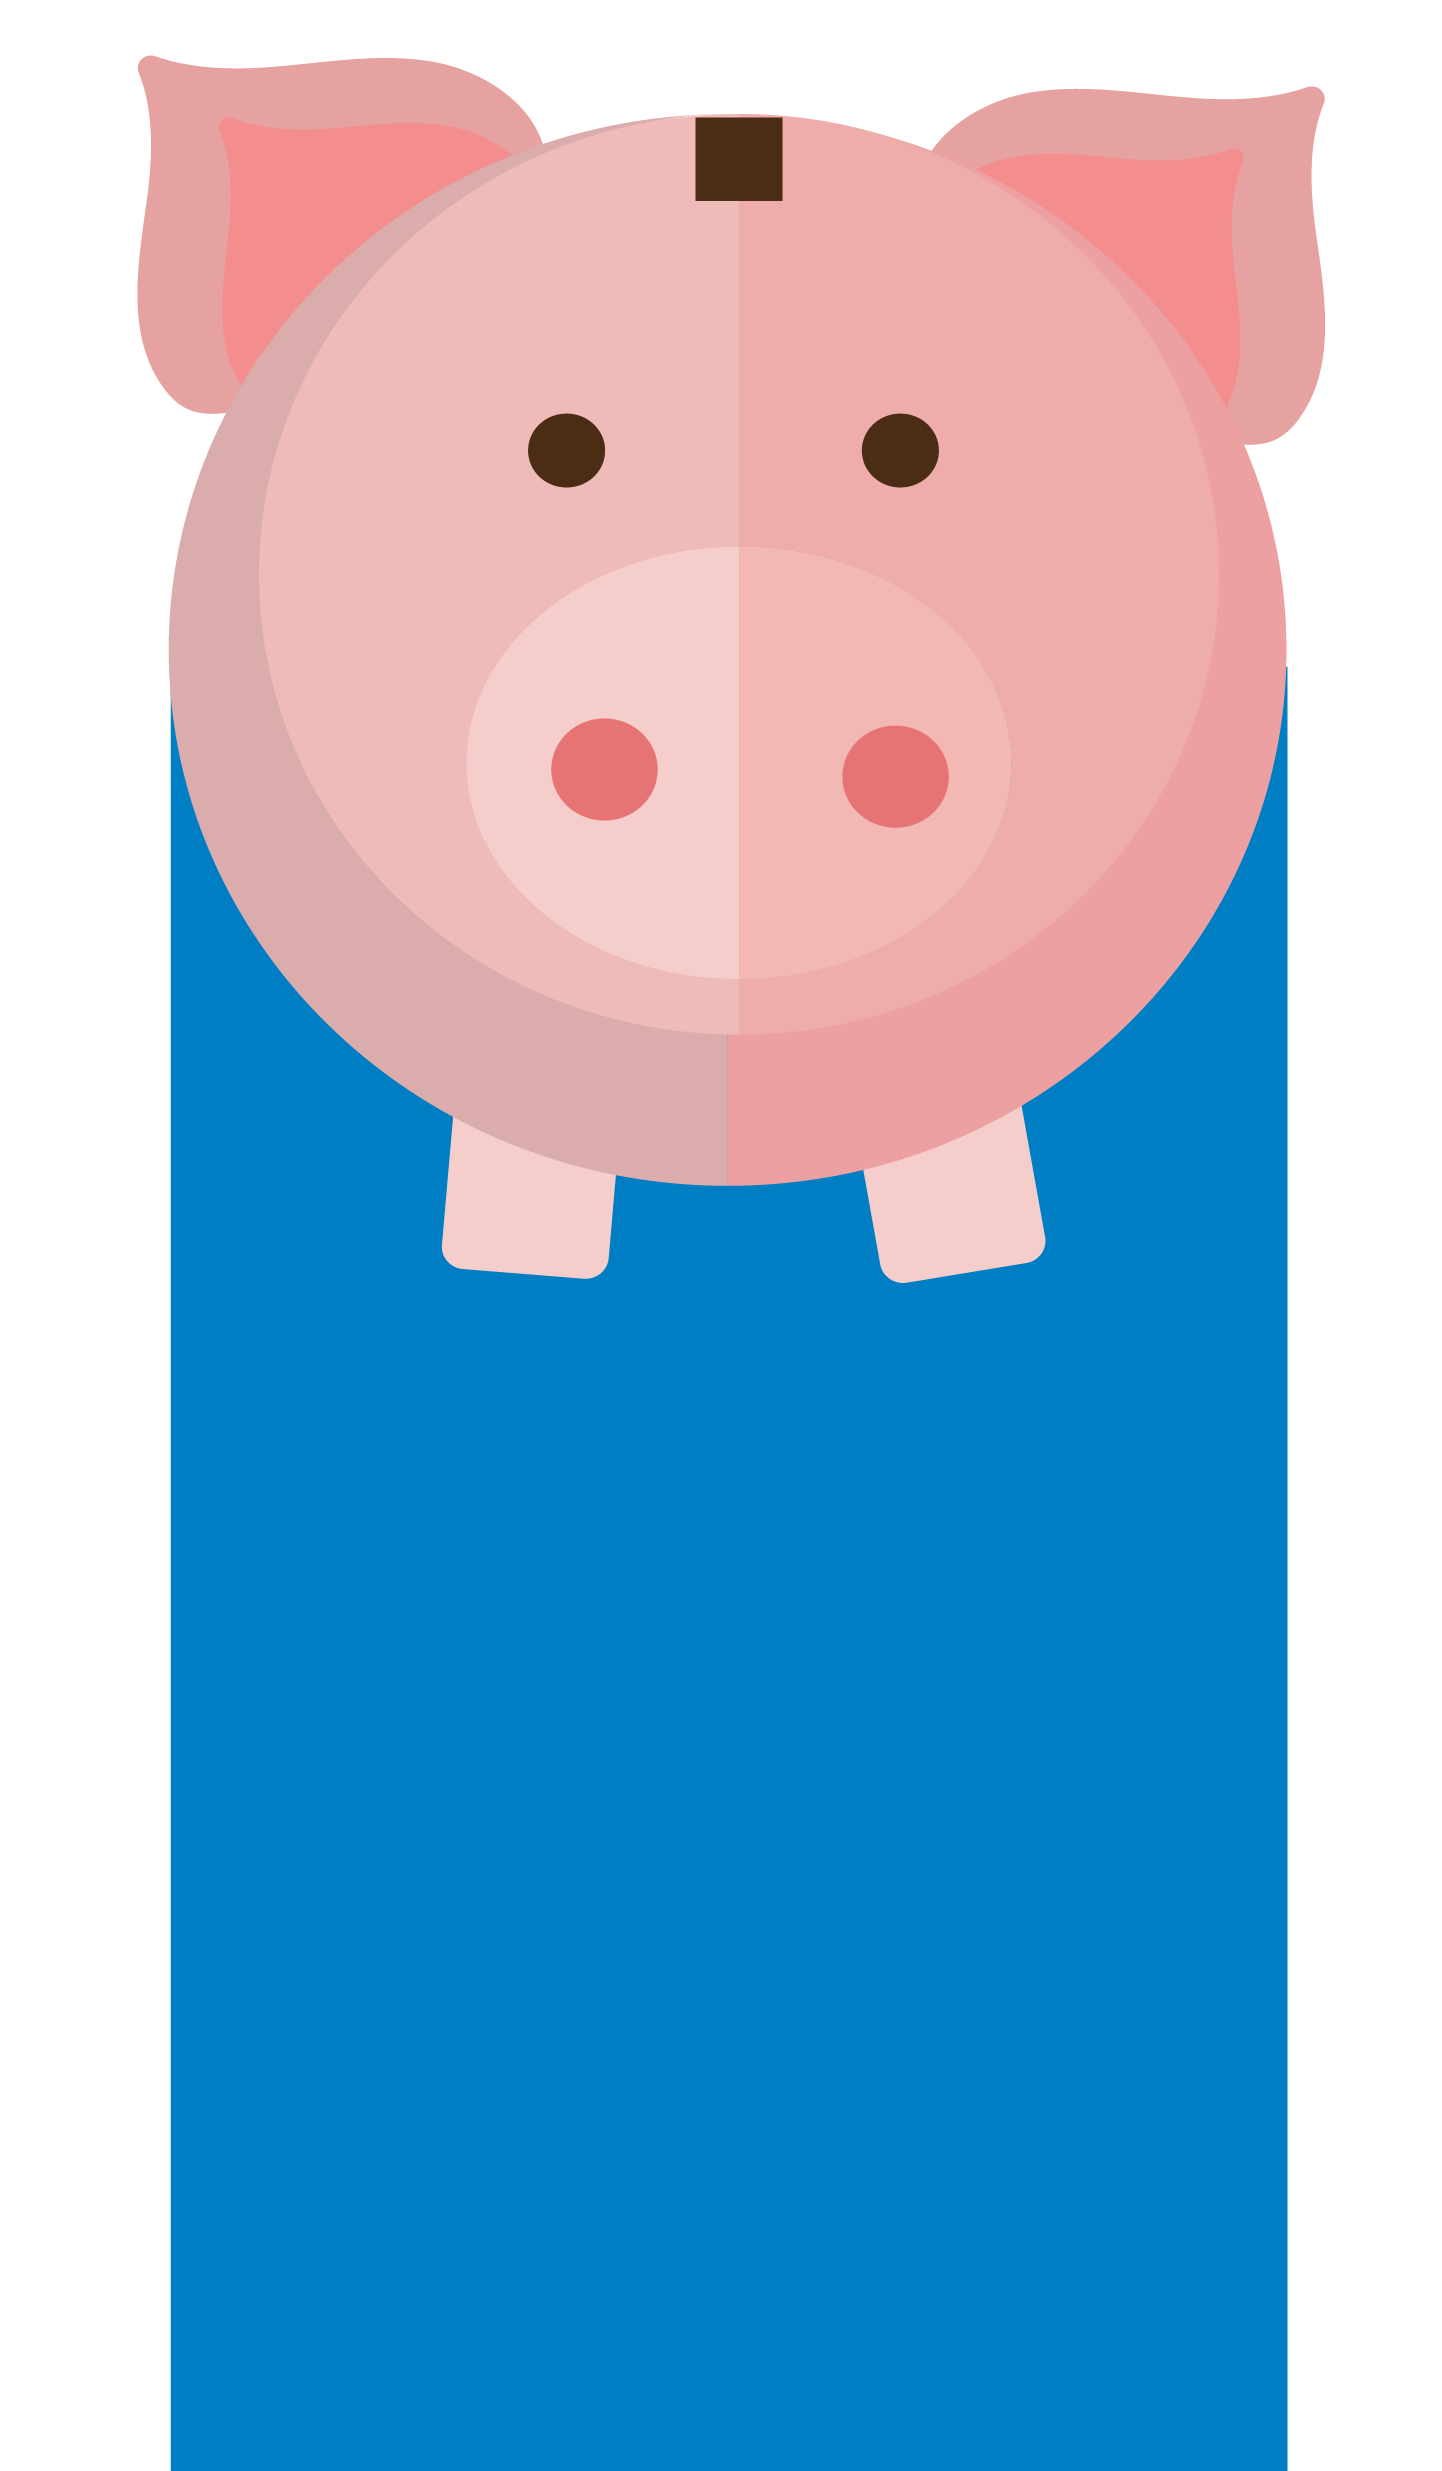 Pig_WCE_2-01